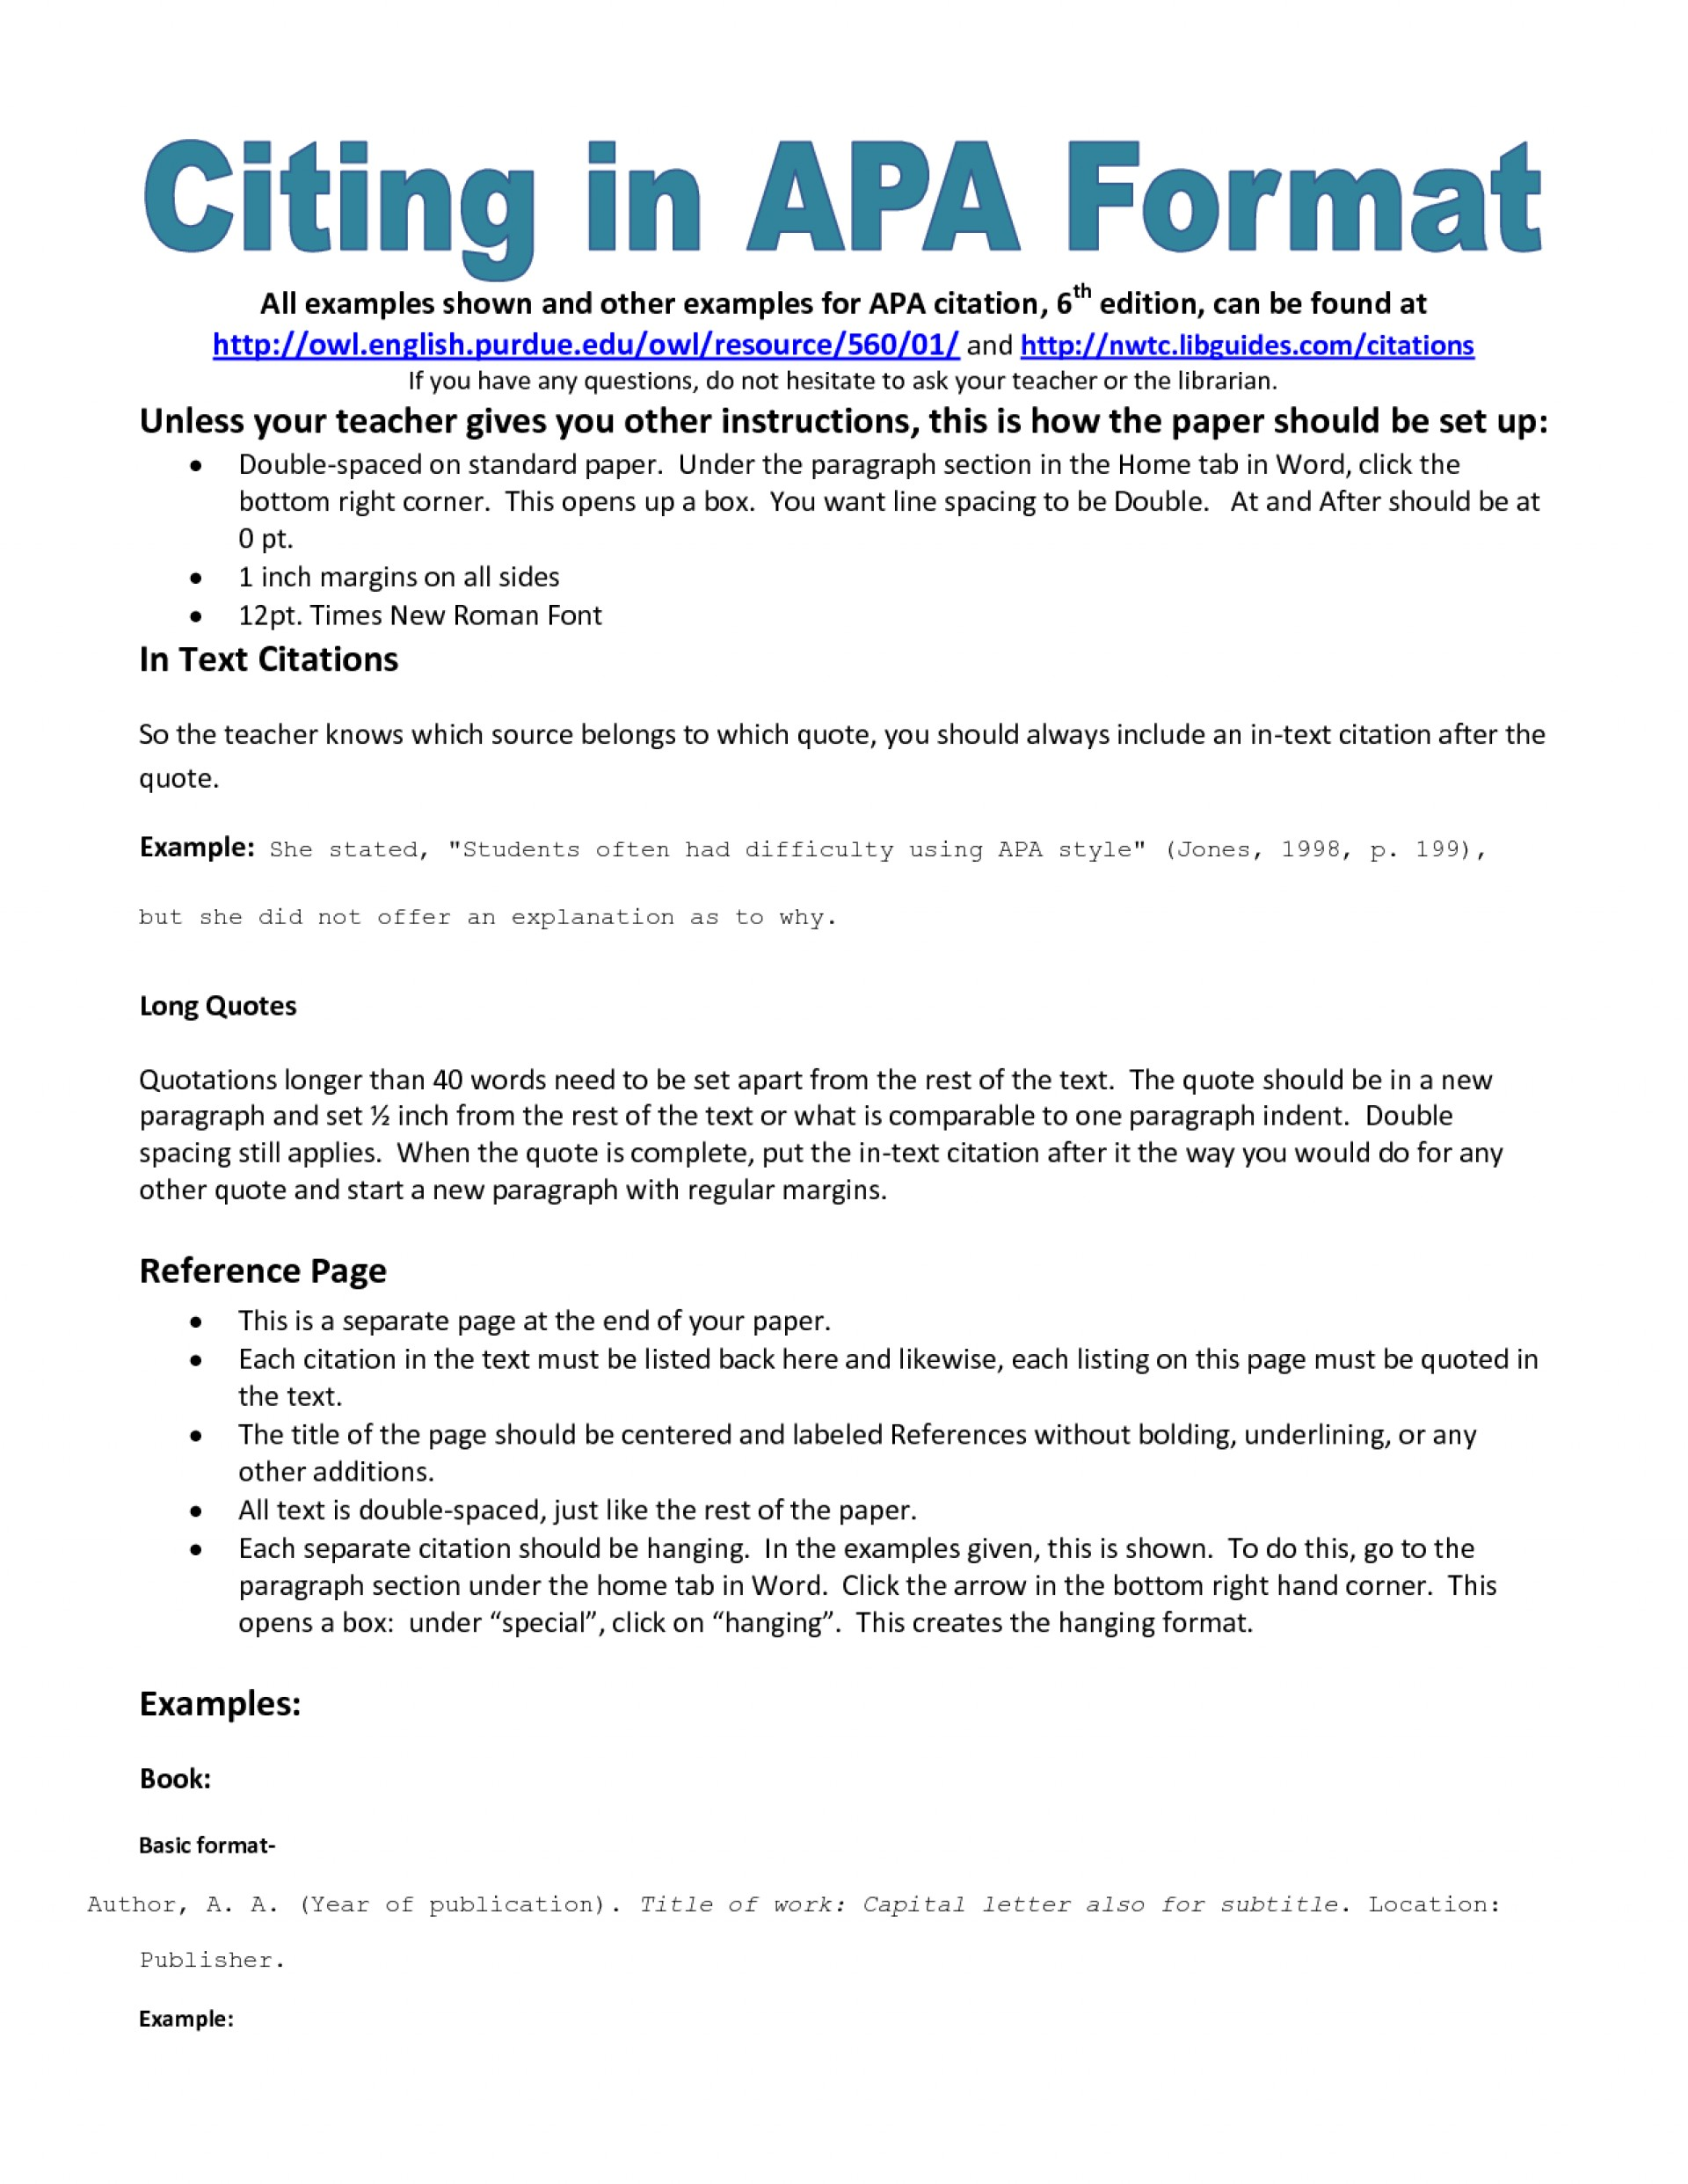 012 Apa Format Research Paper Stunning Examples Example 2012 2017 Citation 1920